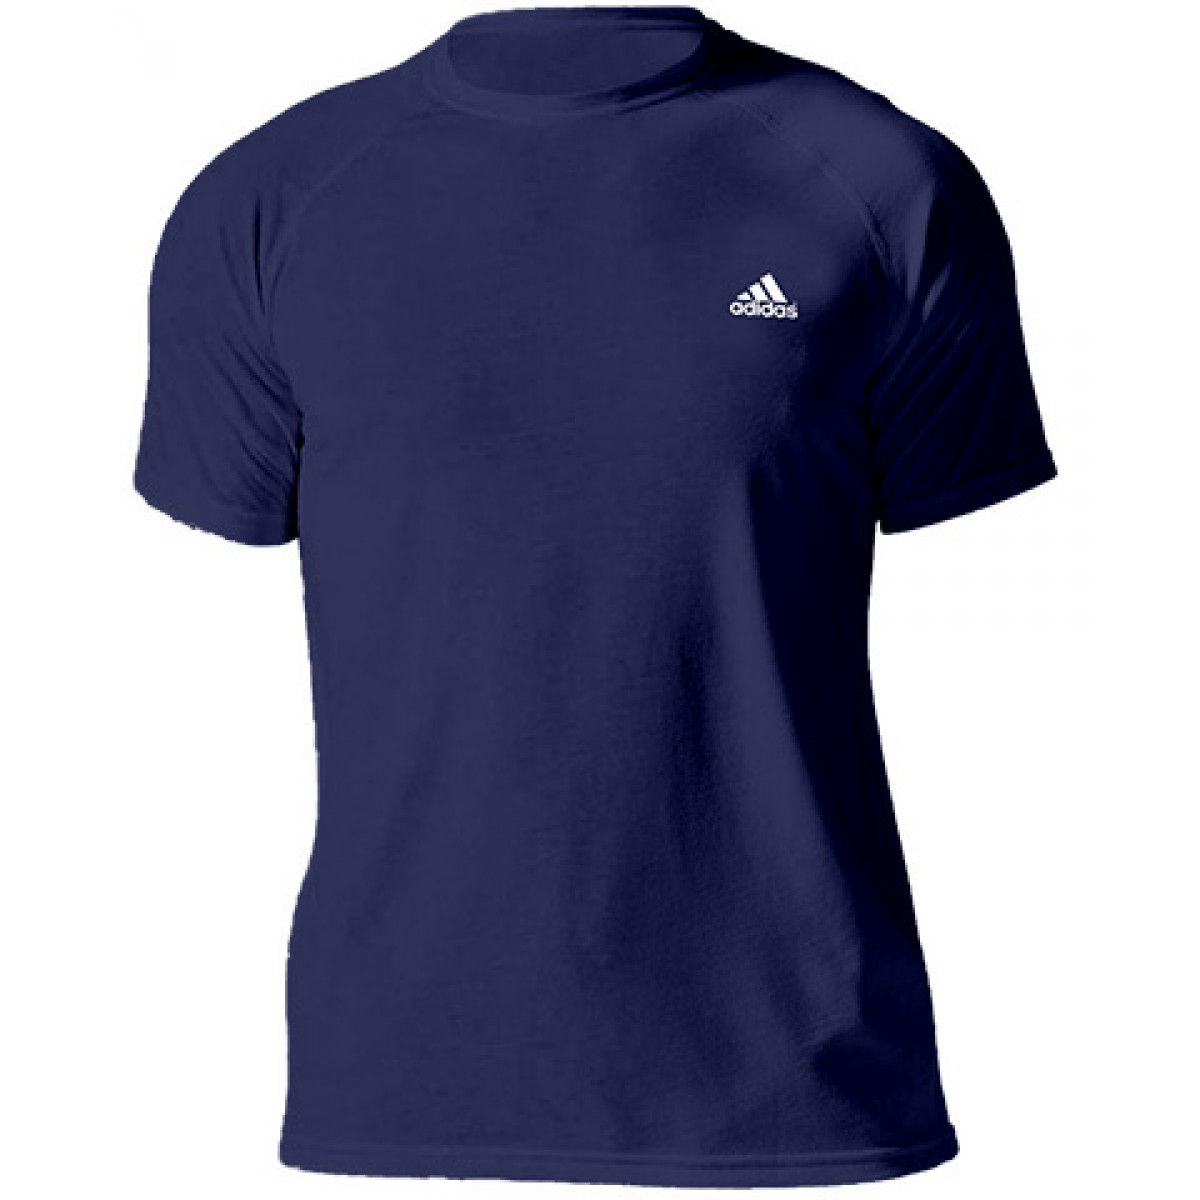 Adidas Embroidered Logo Essential Crew Neck T-shirt-Navy-XS